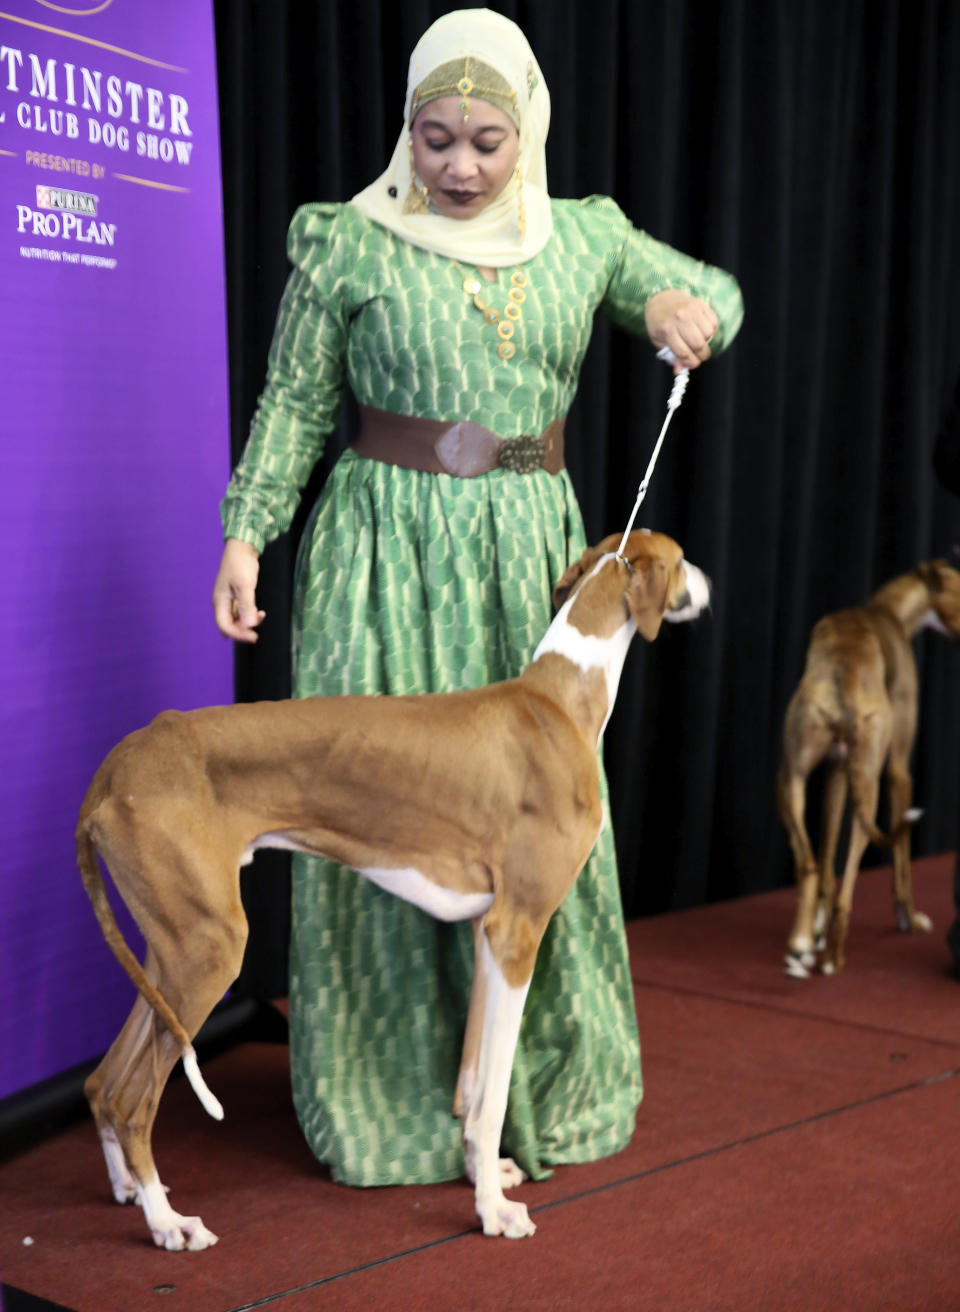 In this Tuesday, Feb. 4, 2020 photo, retired Philadelphia police officer Aliya Taylor poses with her Azawakh named Bahir at a Westminster Kennel Club news conference in New York. The Azawakh is a new breed to the Westminster show this year. There aren't many Muslims in the dog show world, and Taylor says she's never seen another handler wearing a hijab in the ring. Taylor and her dog aren't in the Westminster show this year, but hope to participate next year in America's most prestigious dog event. (AP Photo/Jennifer Peltz)